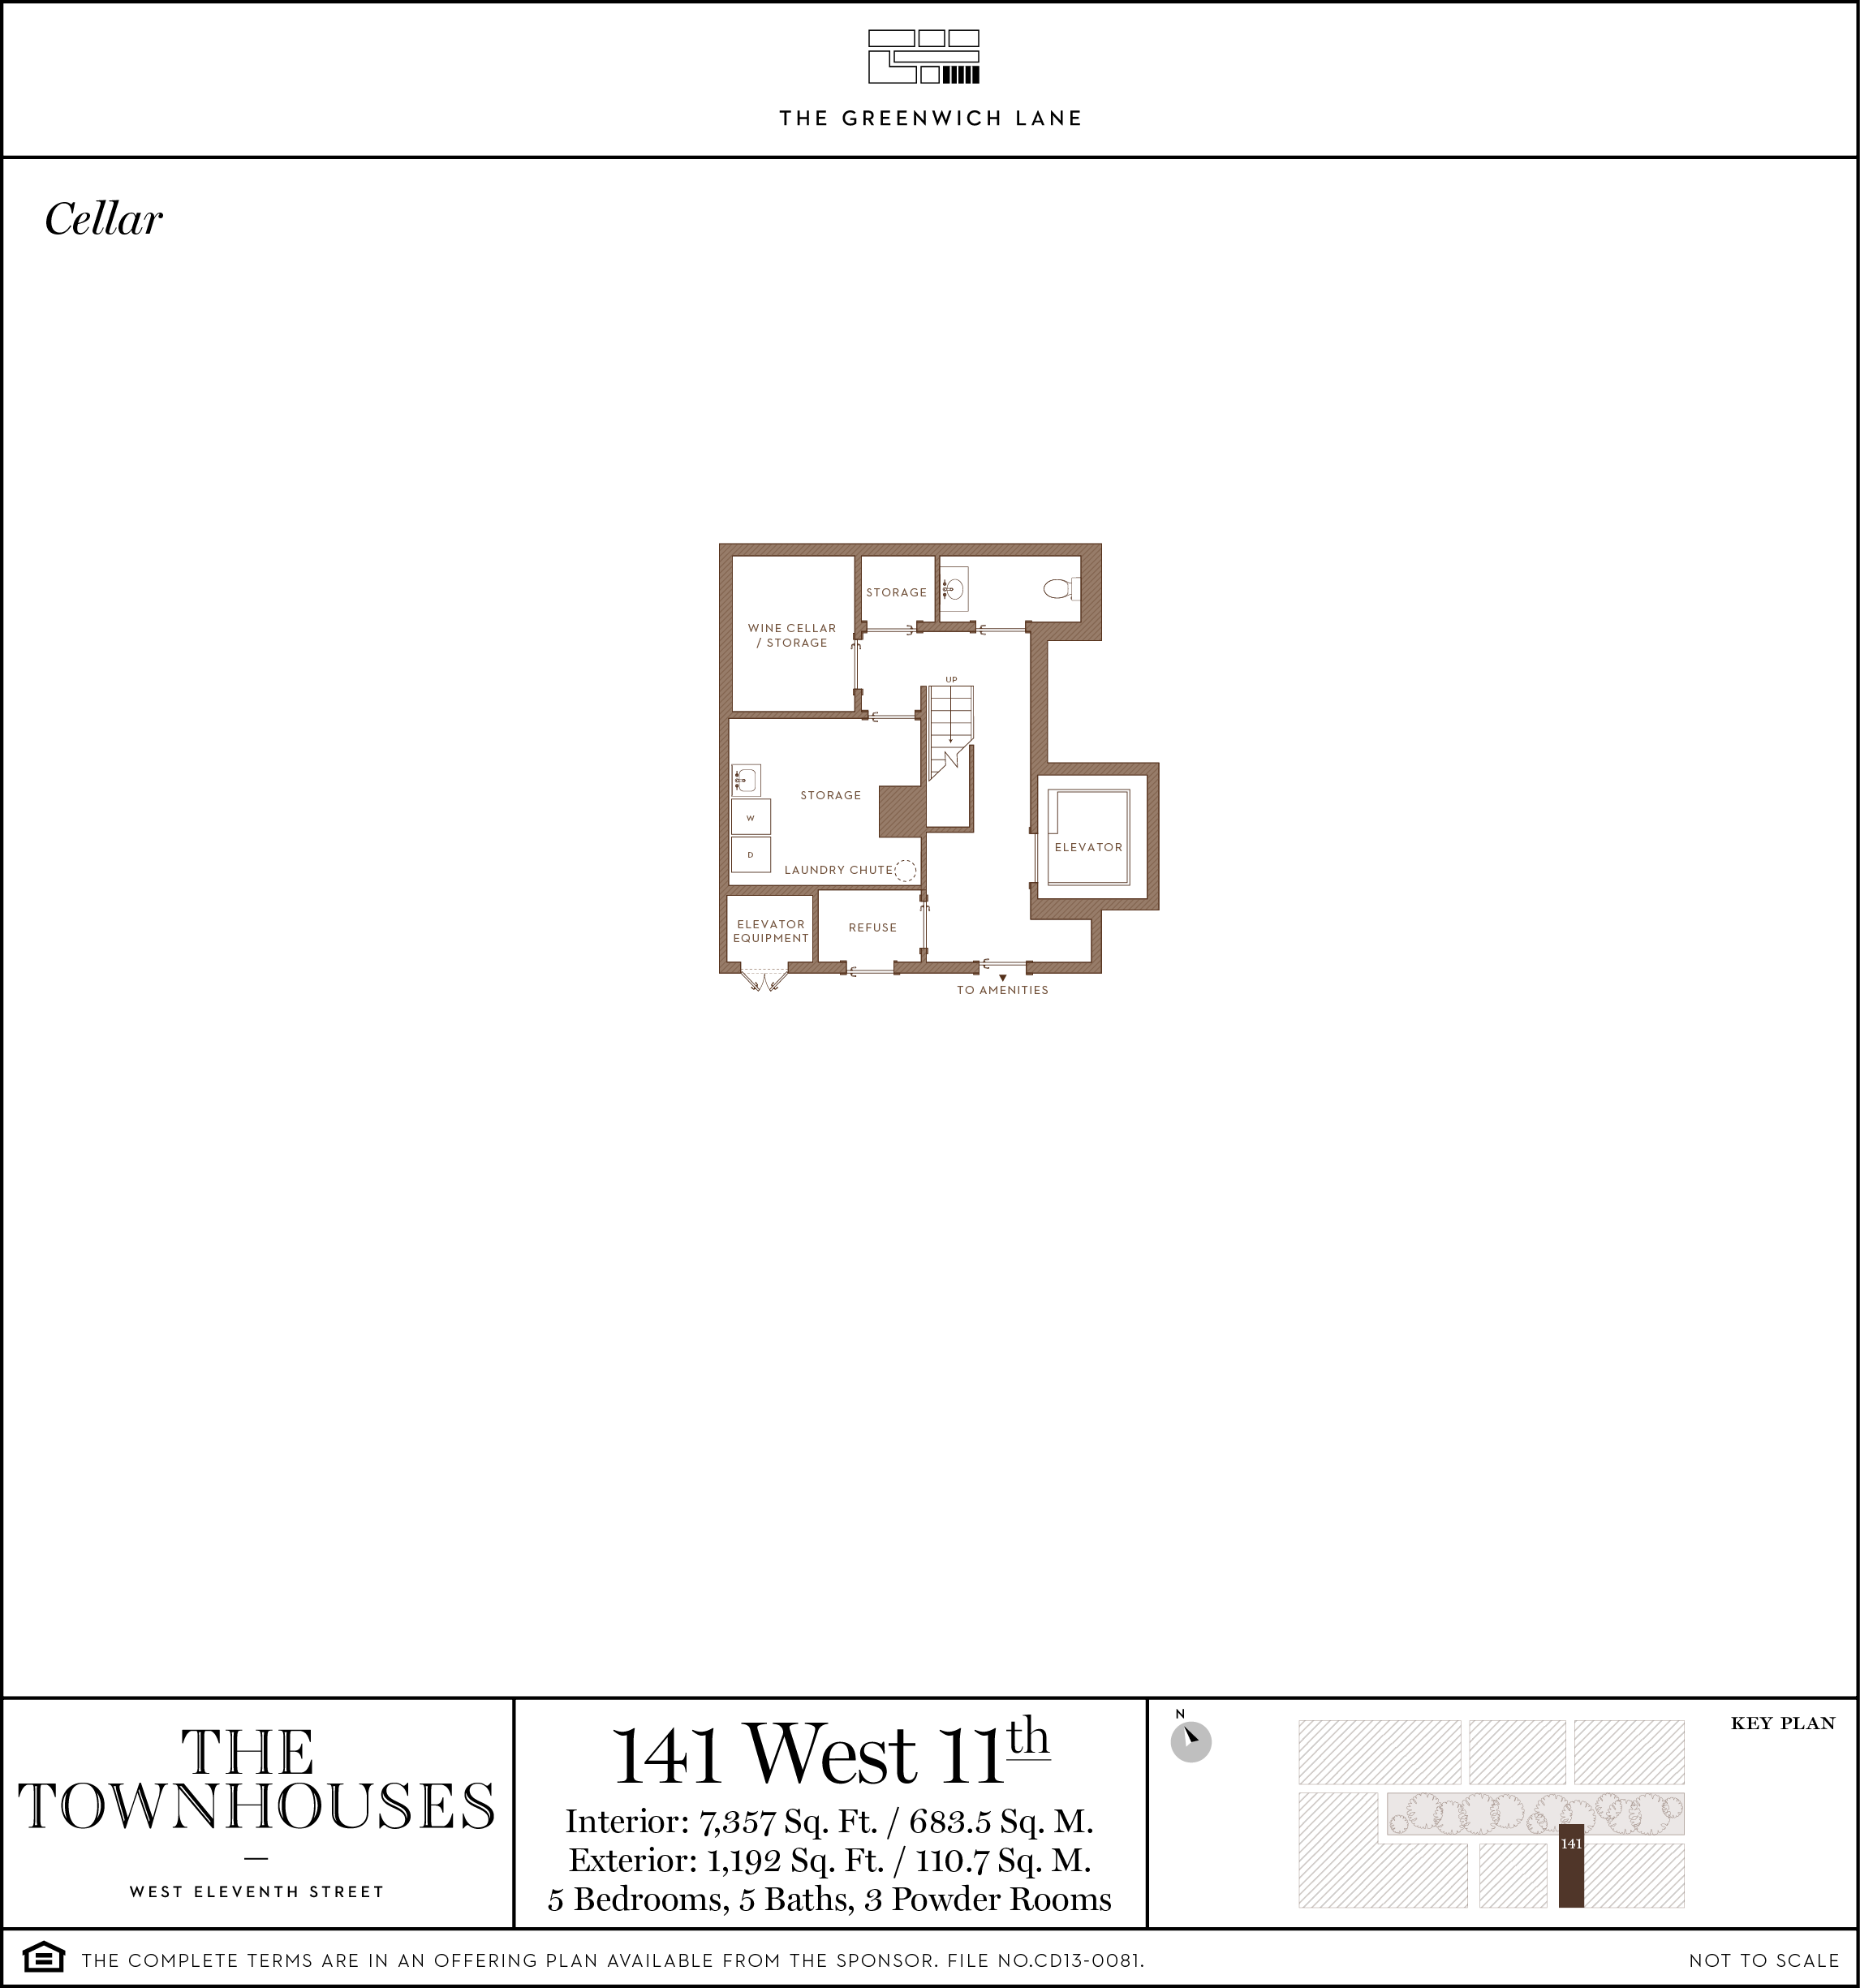 Cellar Level with Access to Parking and Amenities